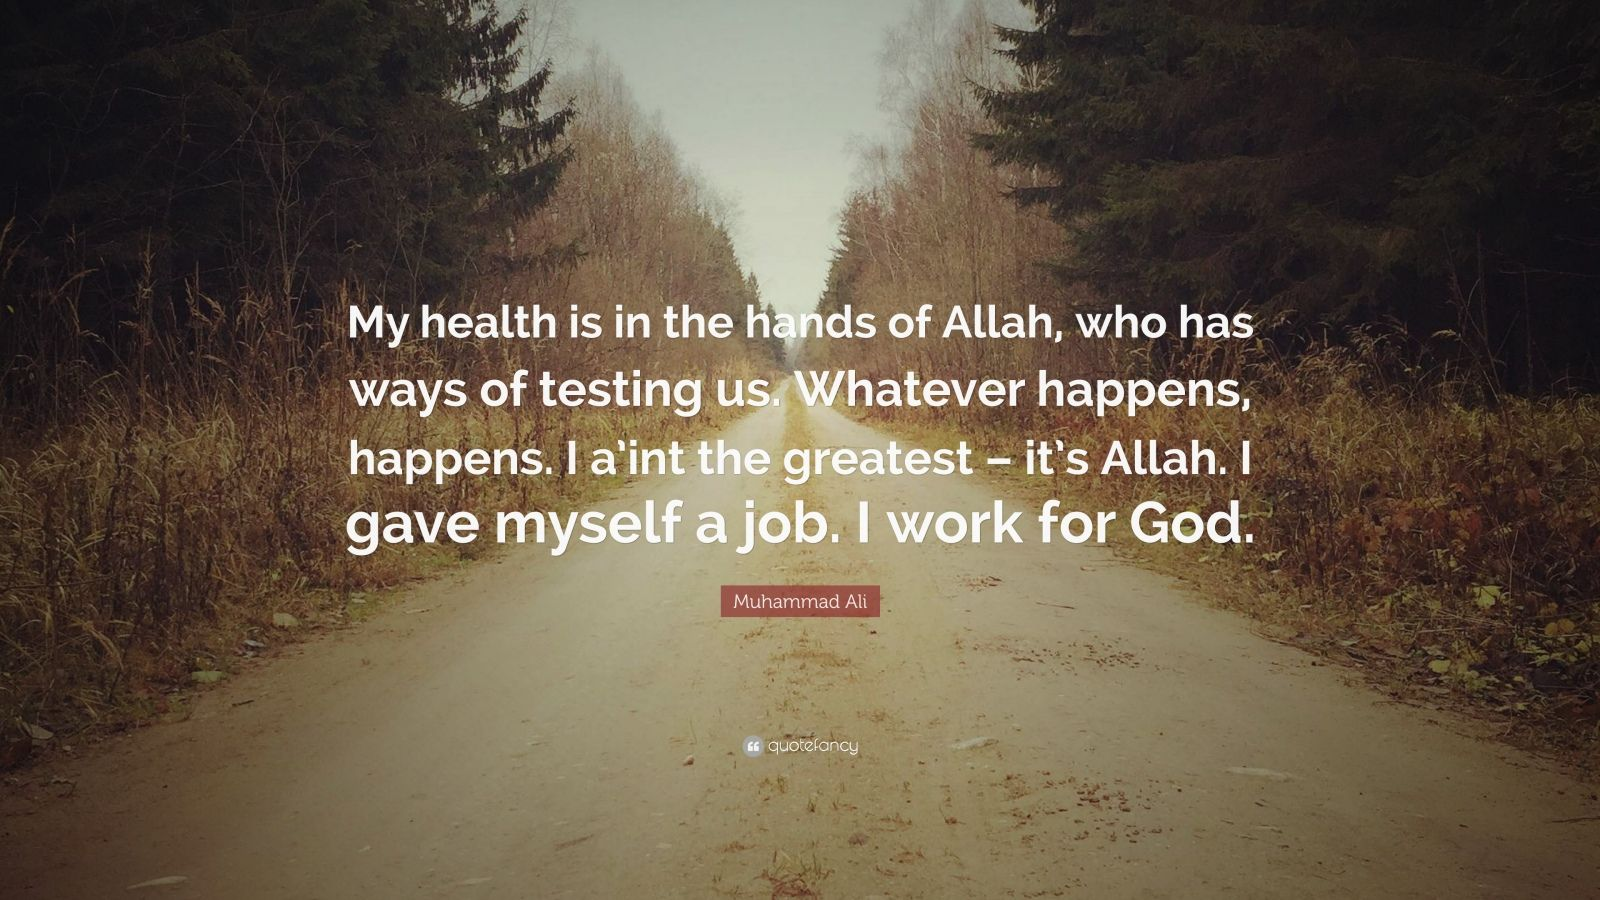 """Muhammad Ali Quote: """"My health is in the hands of Allah, who has ways of testing us. Whatever happens, happens. I a'int the greatest – it's Allah. I gave myself a job. I work for God."""""""